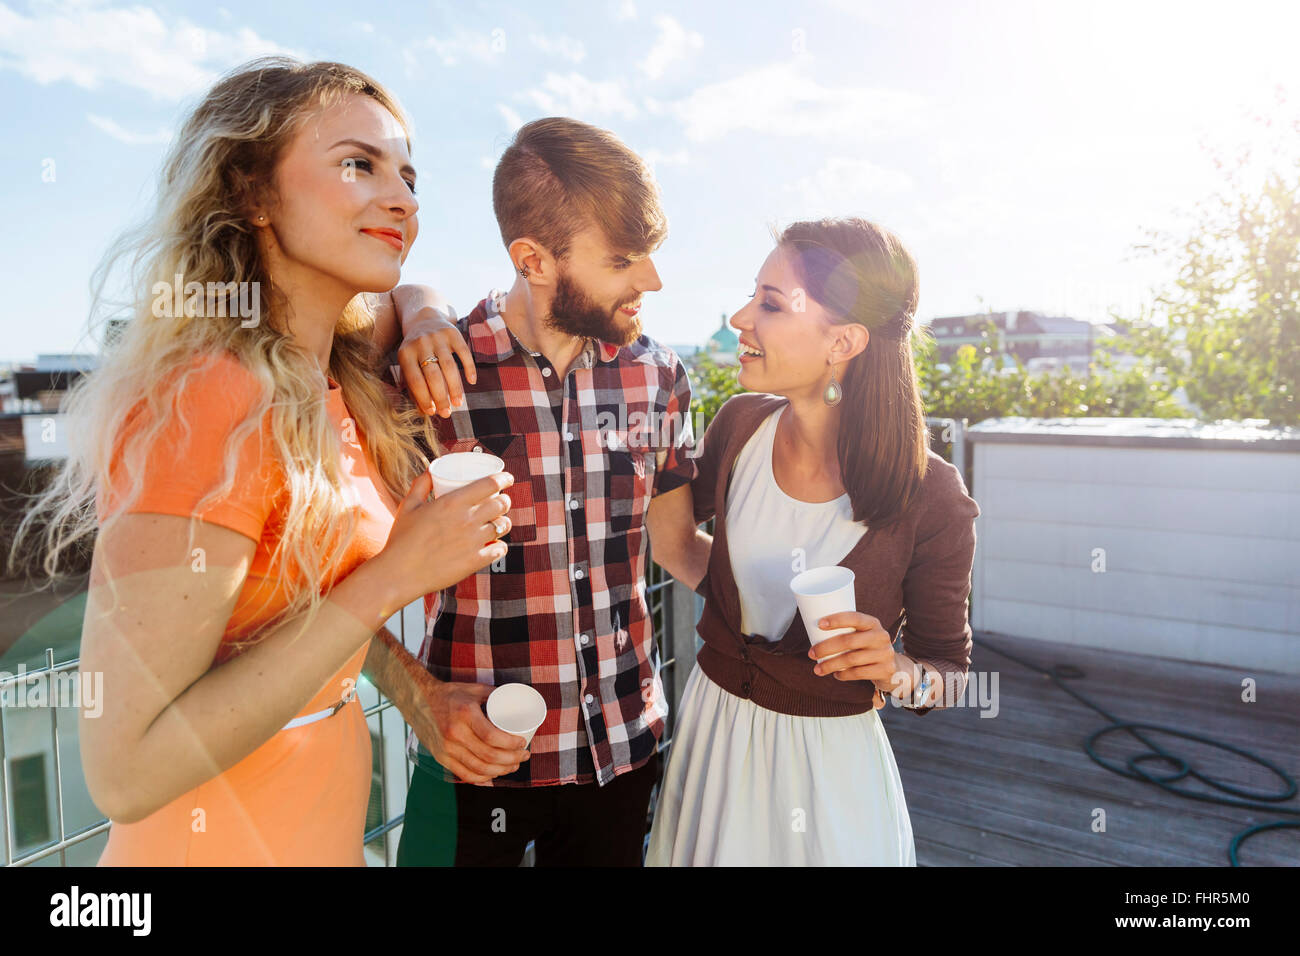 Austria, Vienna, Young people having a party on rooftop terrace - Stock Image